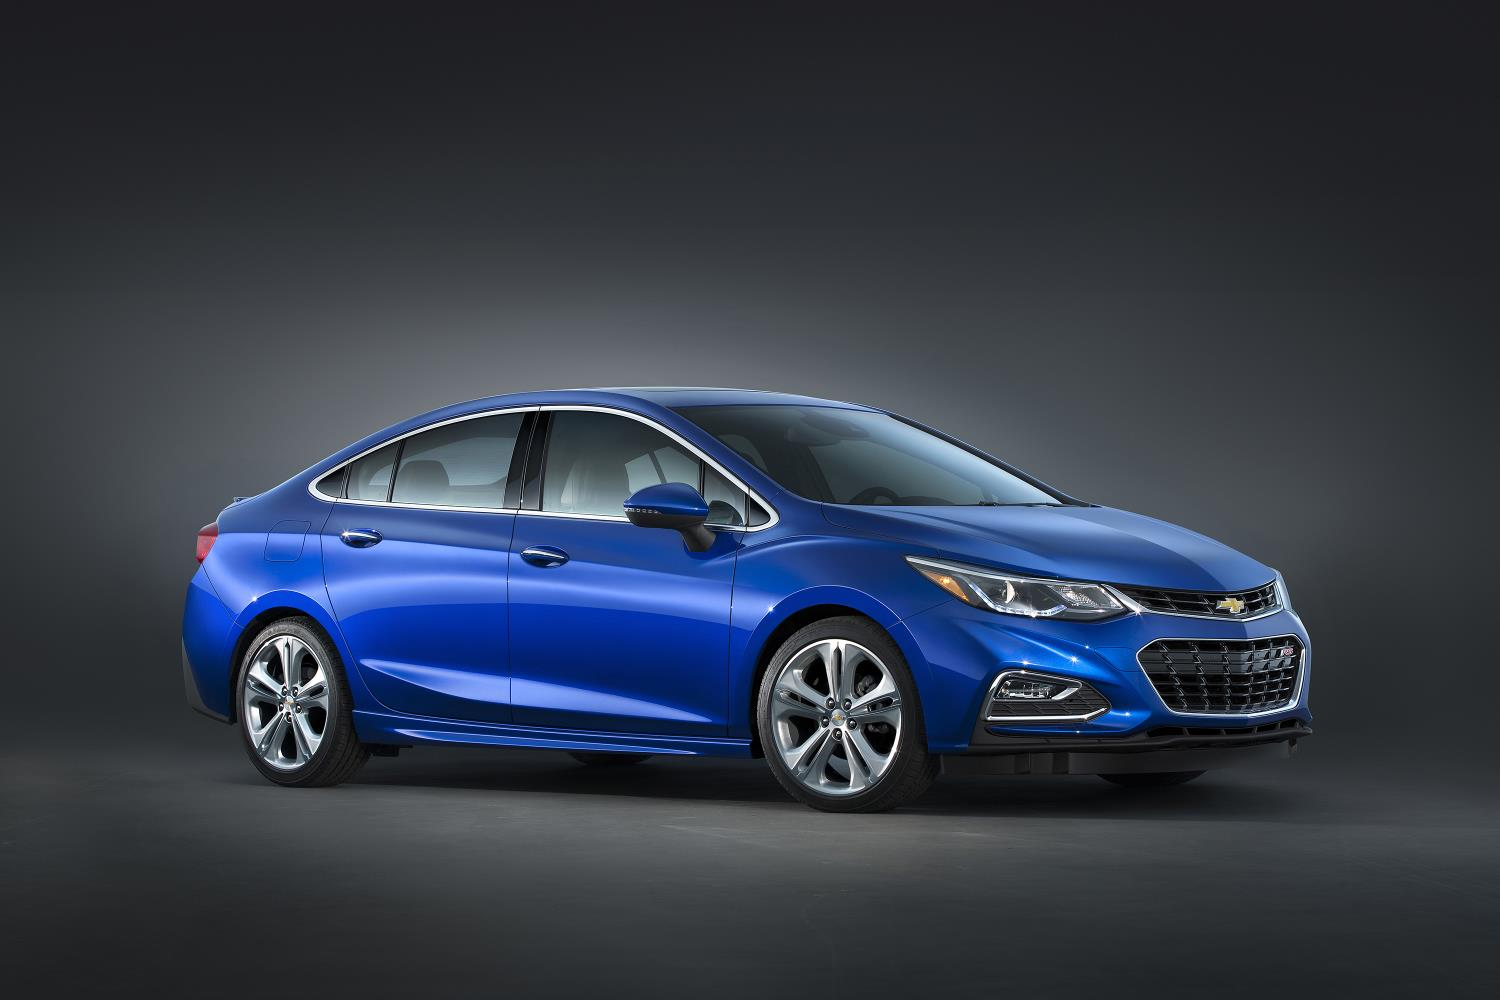 2016 Chevrolet Cruze Fuel Economy Released Cruze Diesel